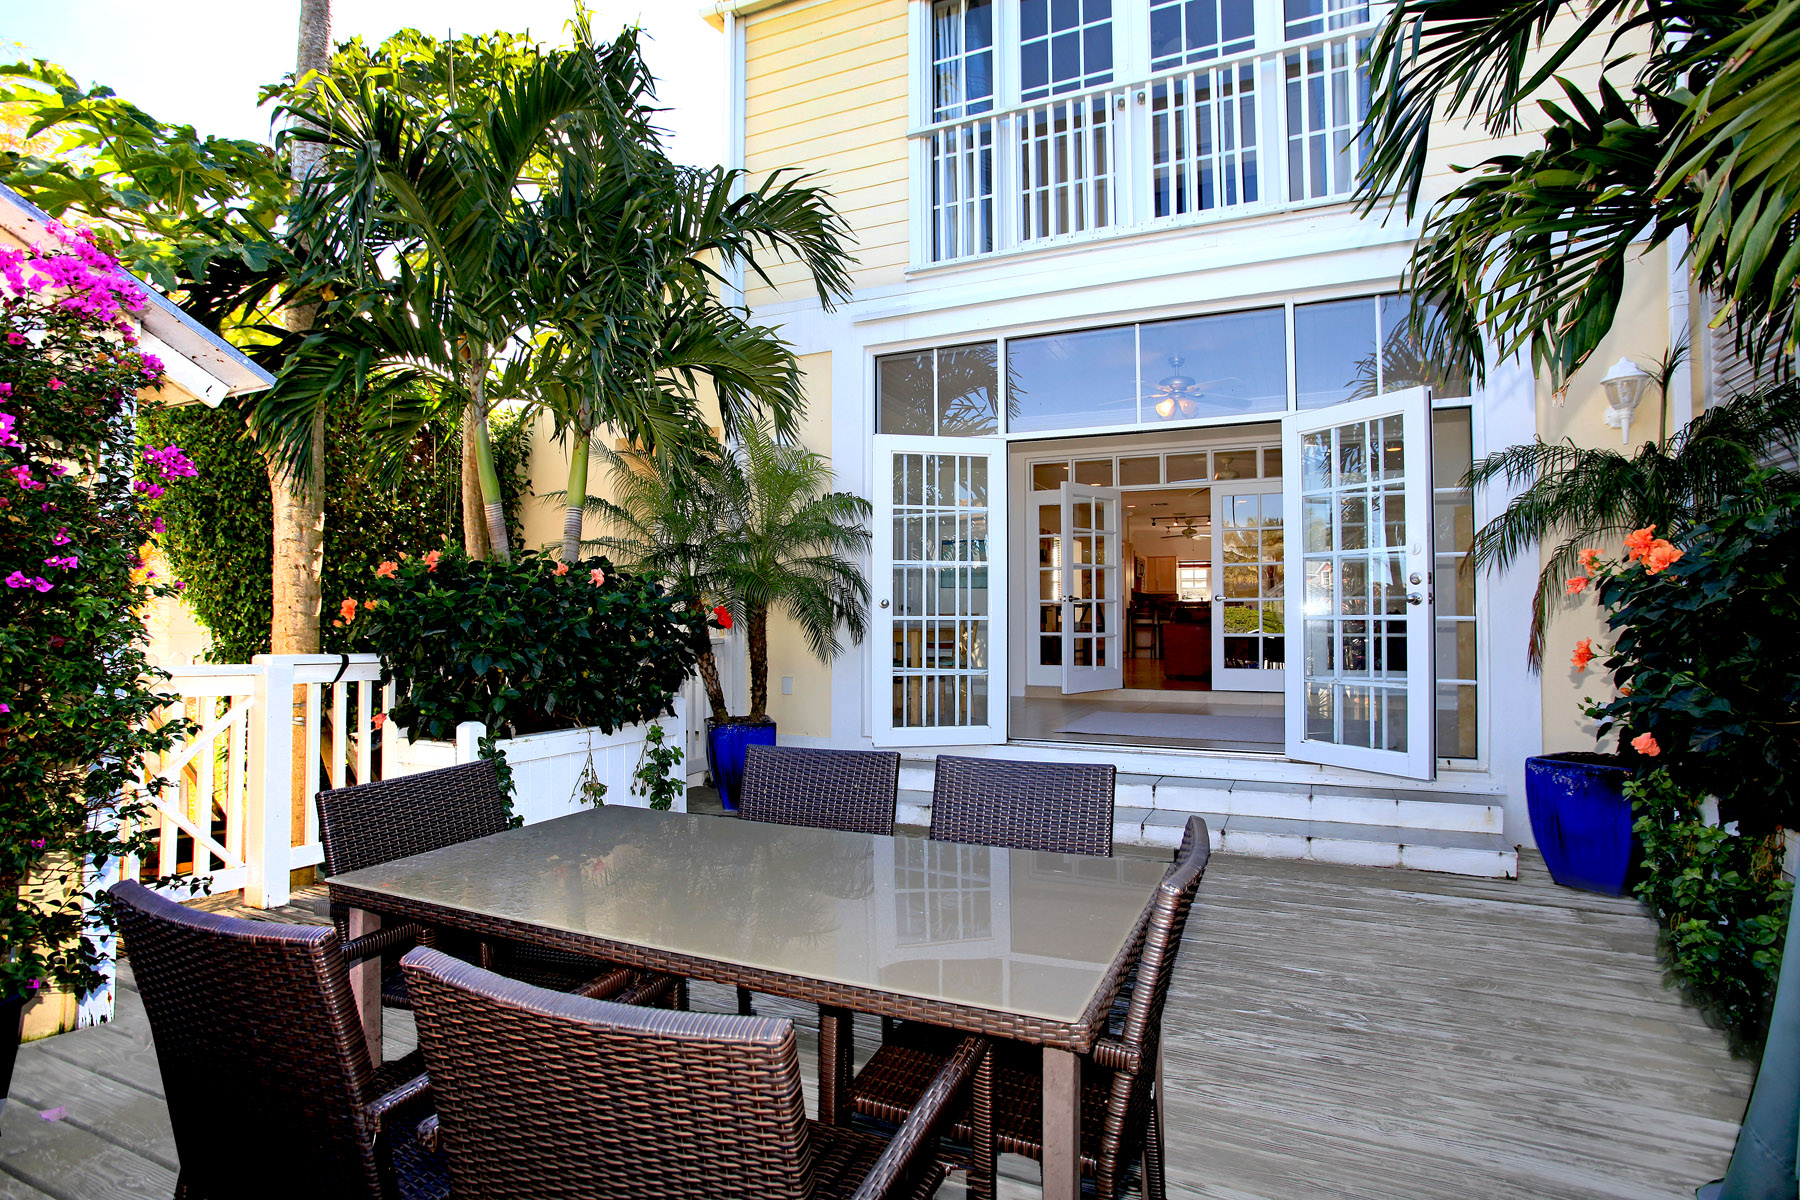 Single Family Home for Sale at Arches Townhouse, Sandyport Sandyport, Cable Beach, Nassau And Paradise Island Bahamas